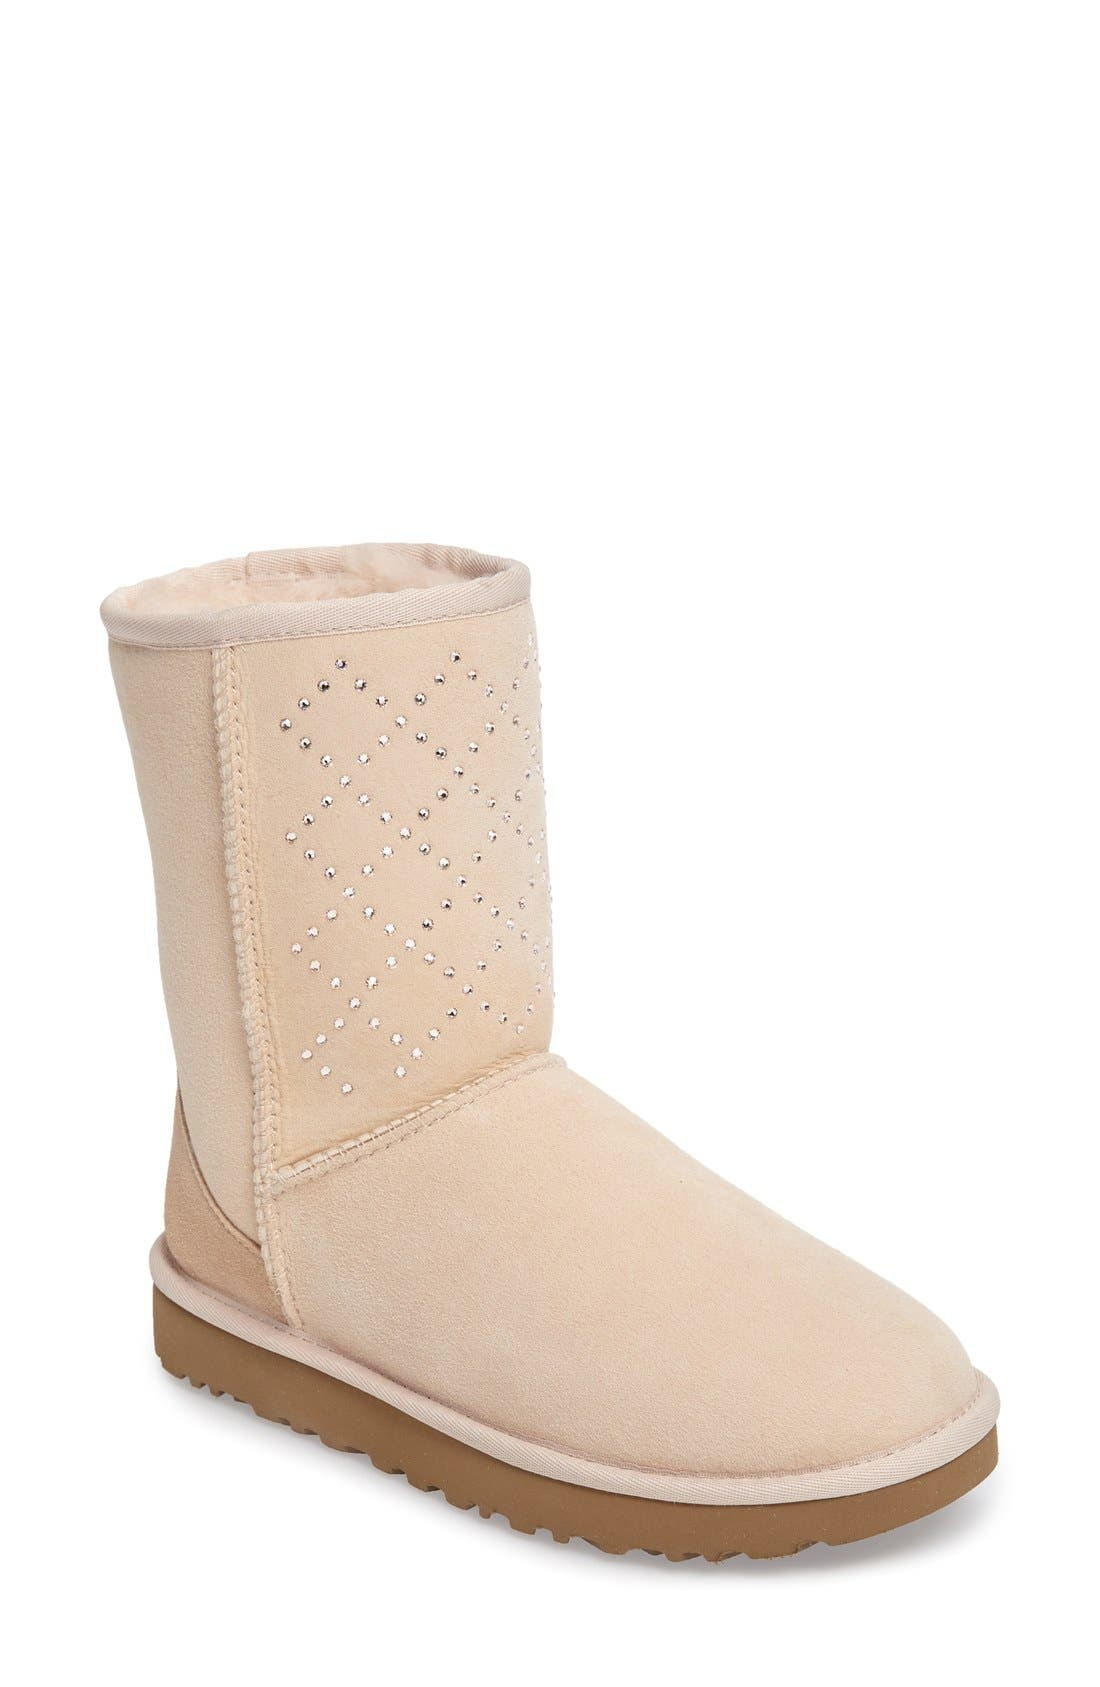 Alternate Image 1 Selected - UGG® Classic Short - Crystal Genuine Shearling Lined Boot (Women)